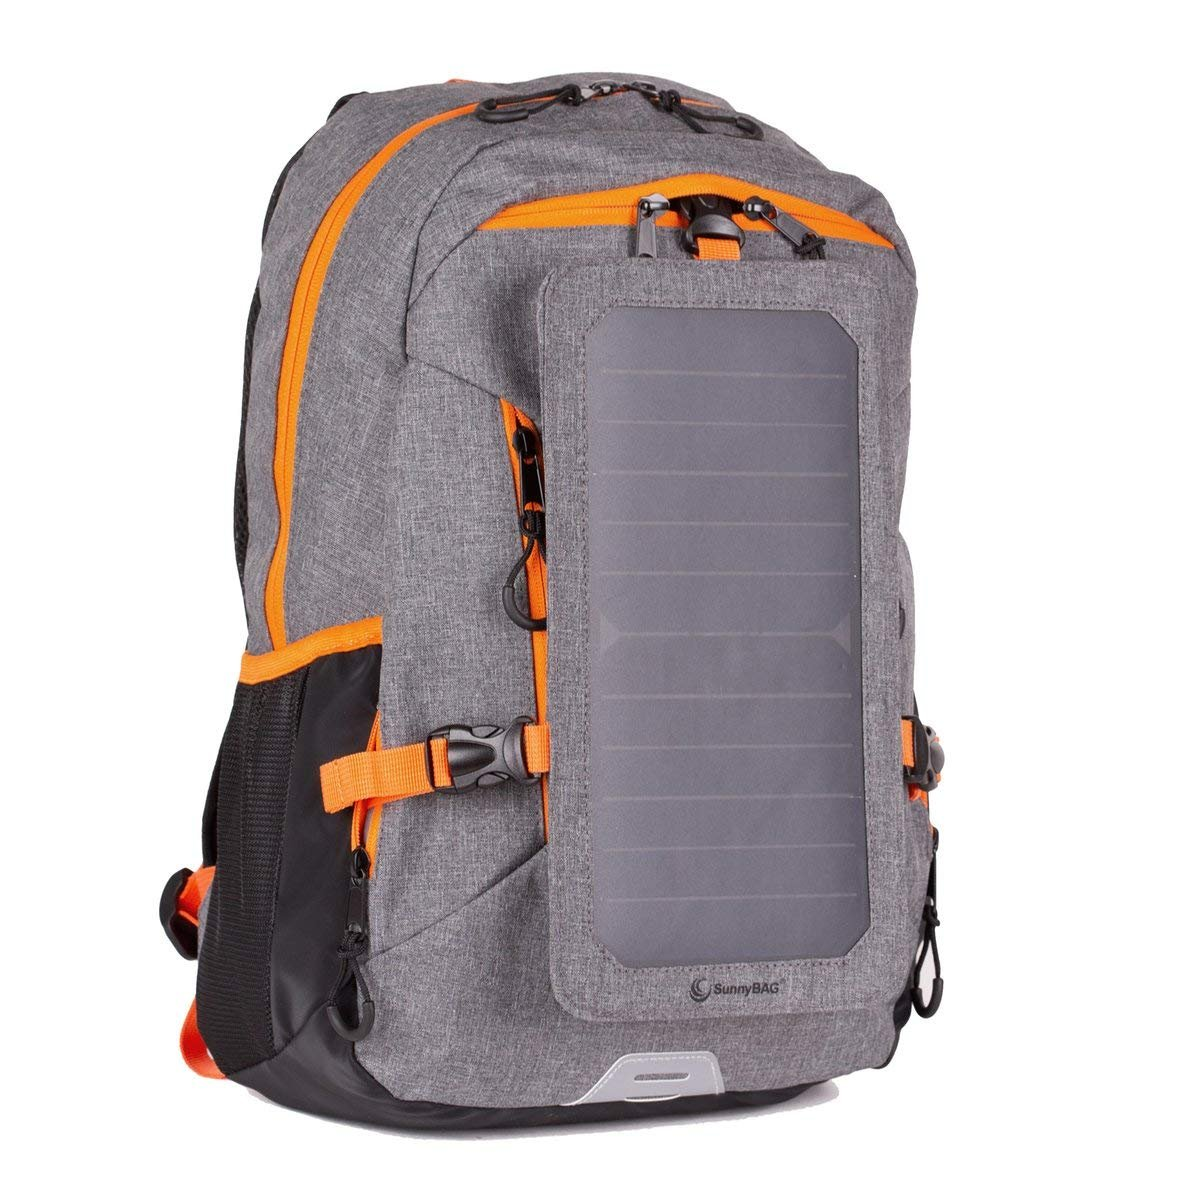 Backpack with Solar-Panel by SUNNYBAG Explorer+   solarbag Solar Charger   World's Strongest solarpanel for Smartphone Charging on The go   Grey/Orange